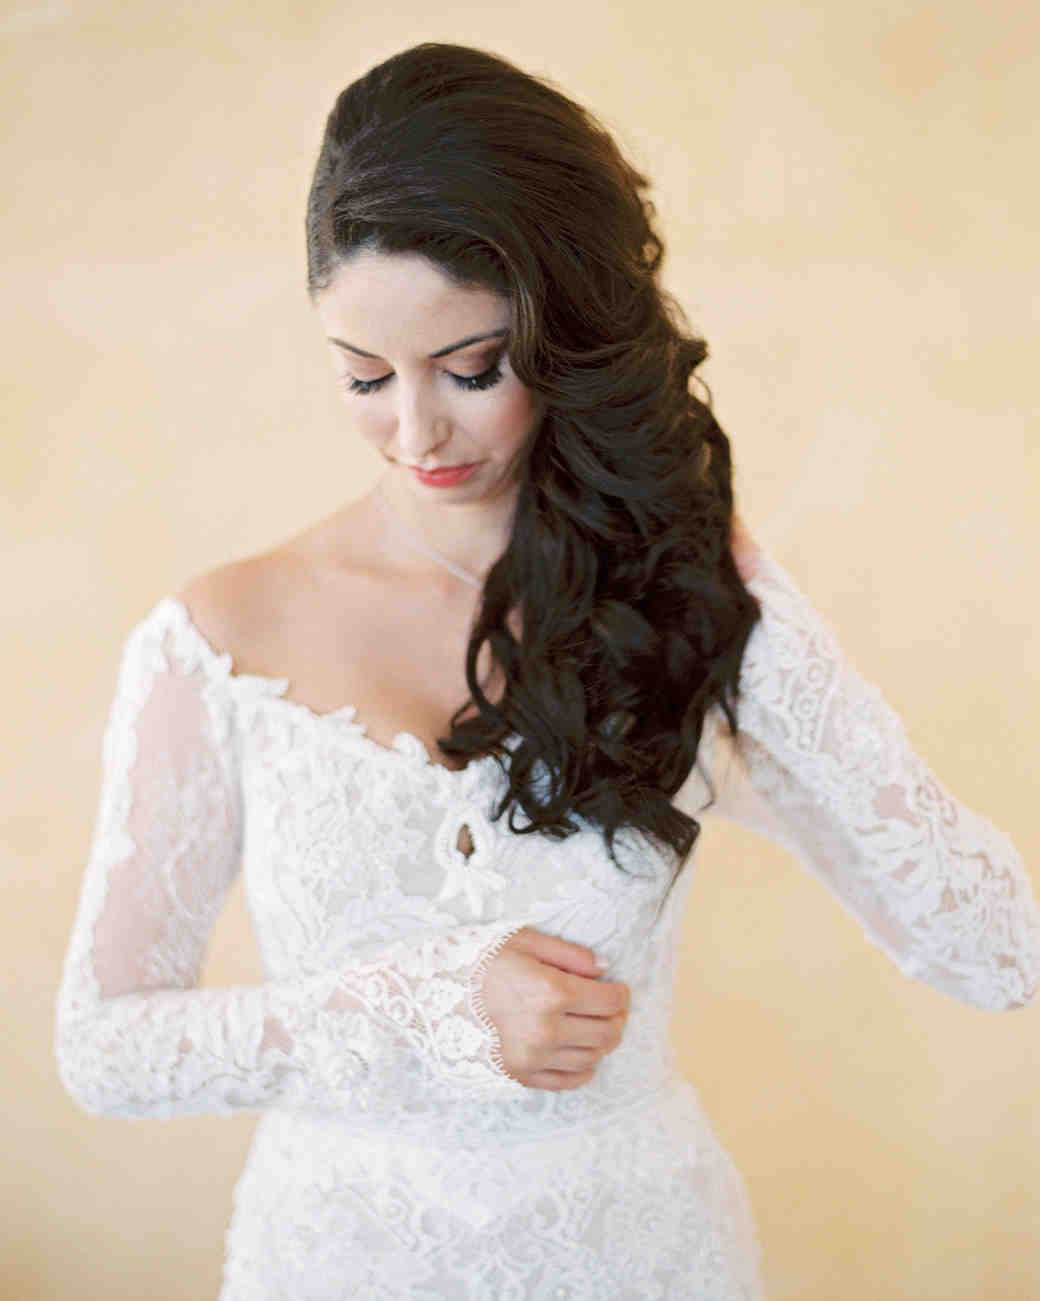 Neck High wedding dress hair pictures recommend to wear in autumn in 2019